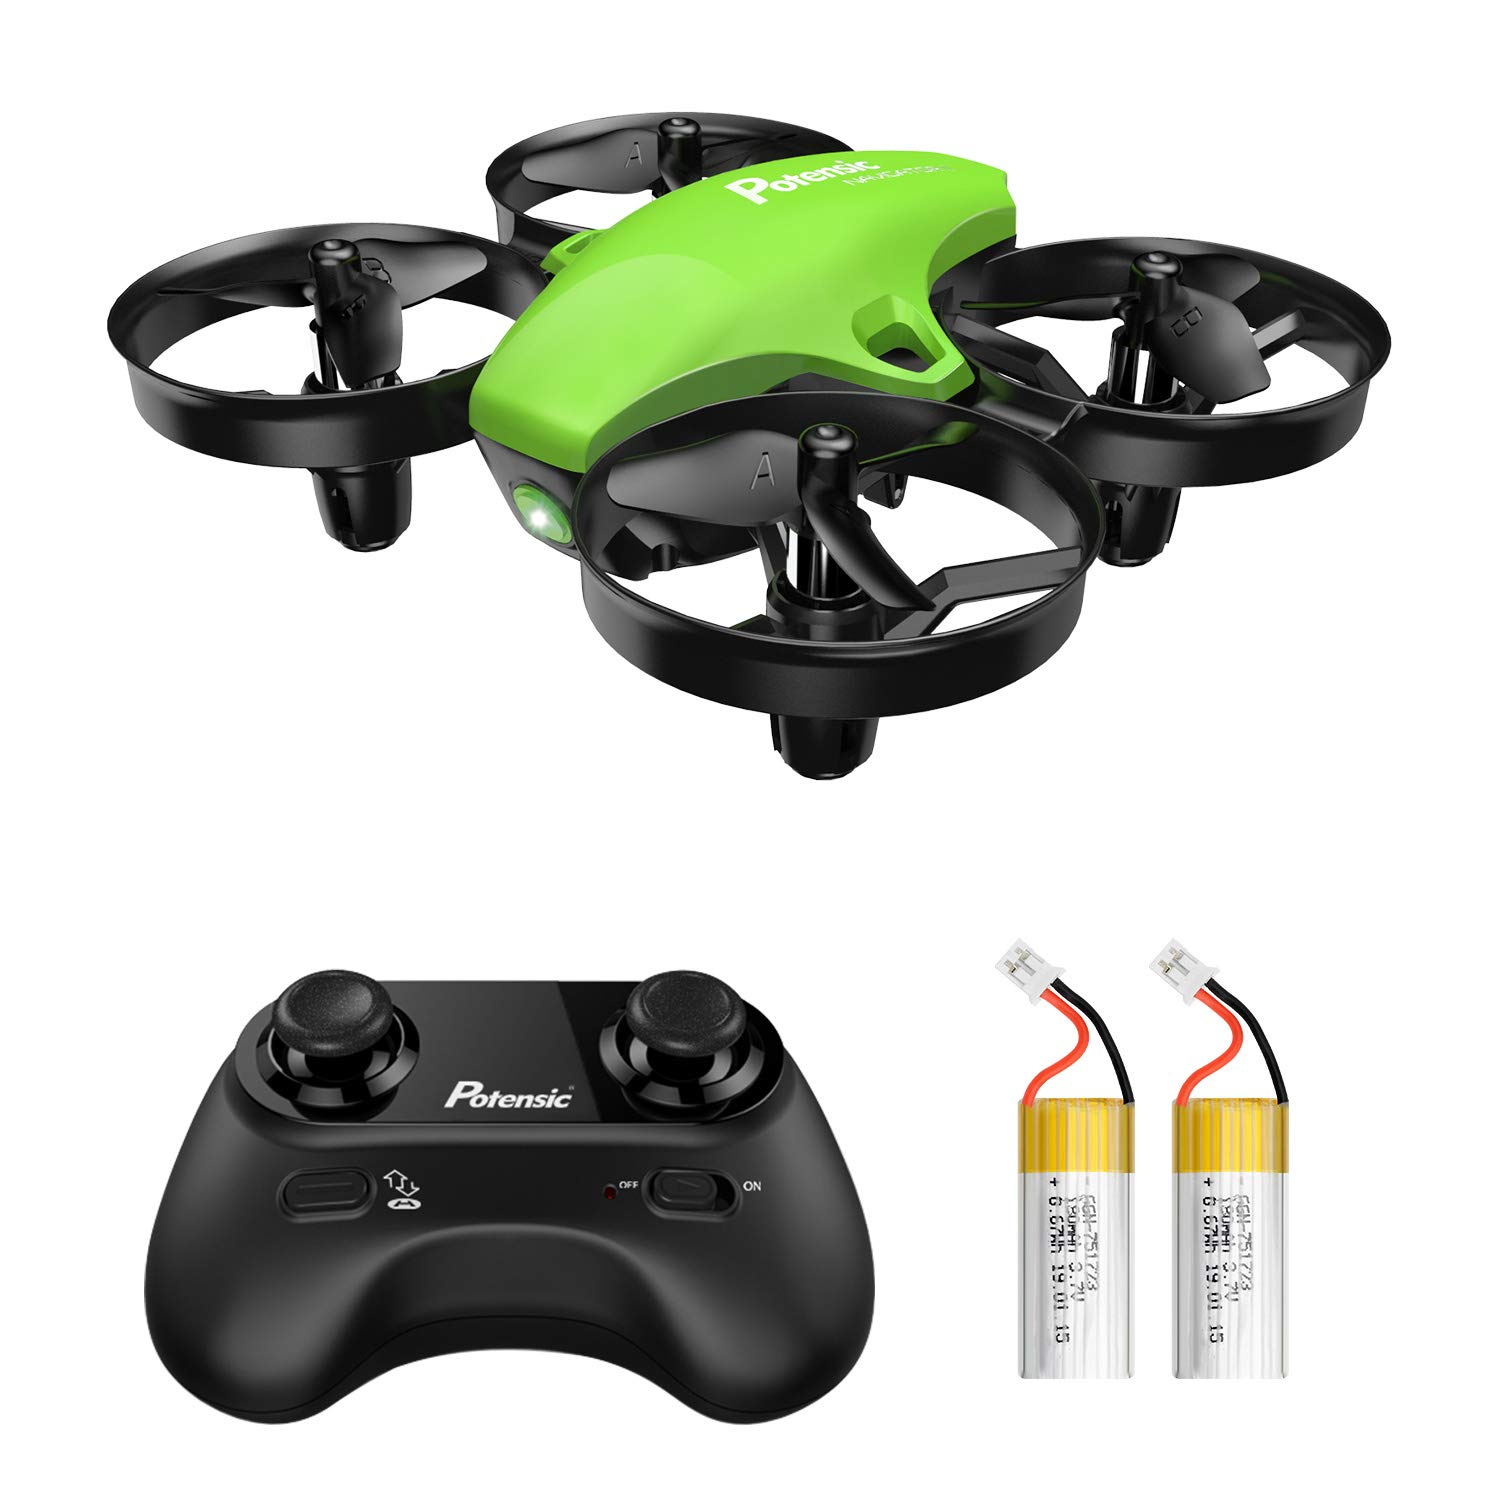 Potensic Upgraded A20 Mini Drone Easy to Fly Even to Kids and Beginners, RC Helicopter Quadcopter with Auto Hovering, Headless Mode, Extra Batteries and Remote Control-Green by Potensic